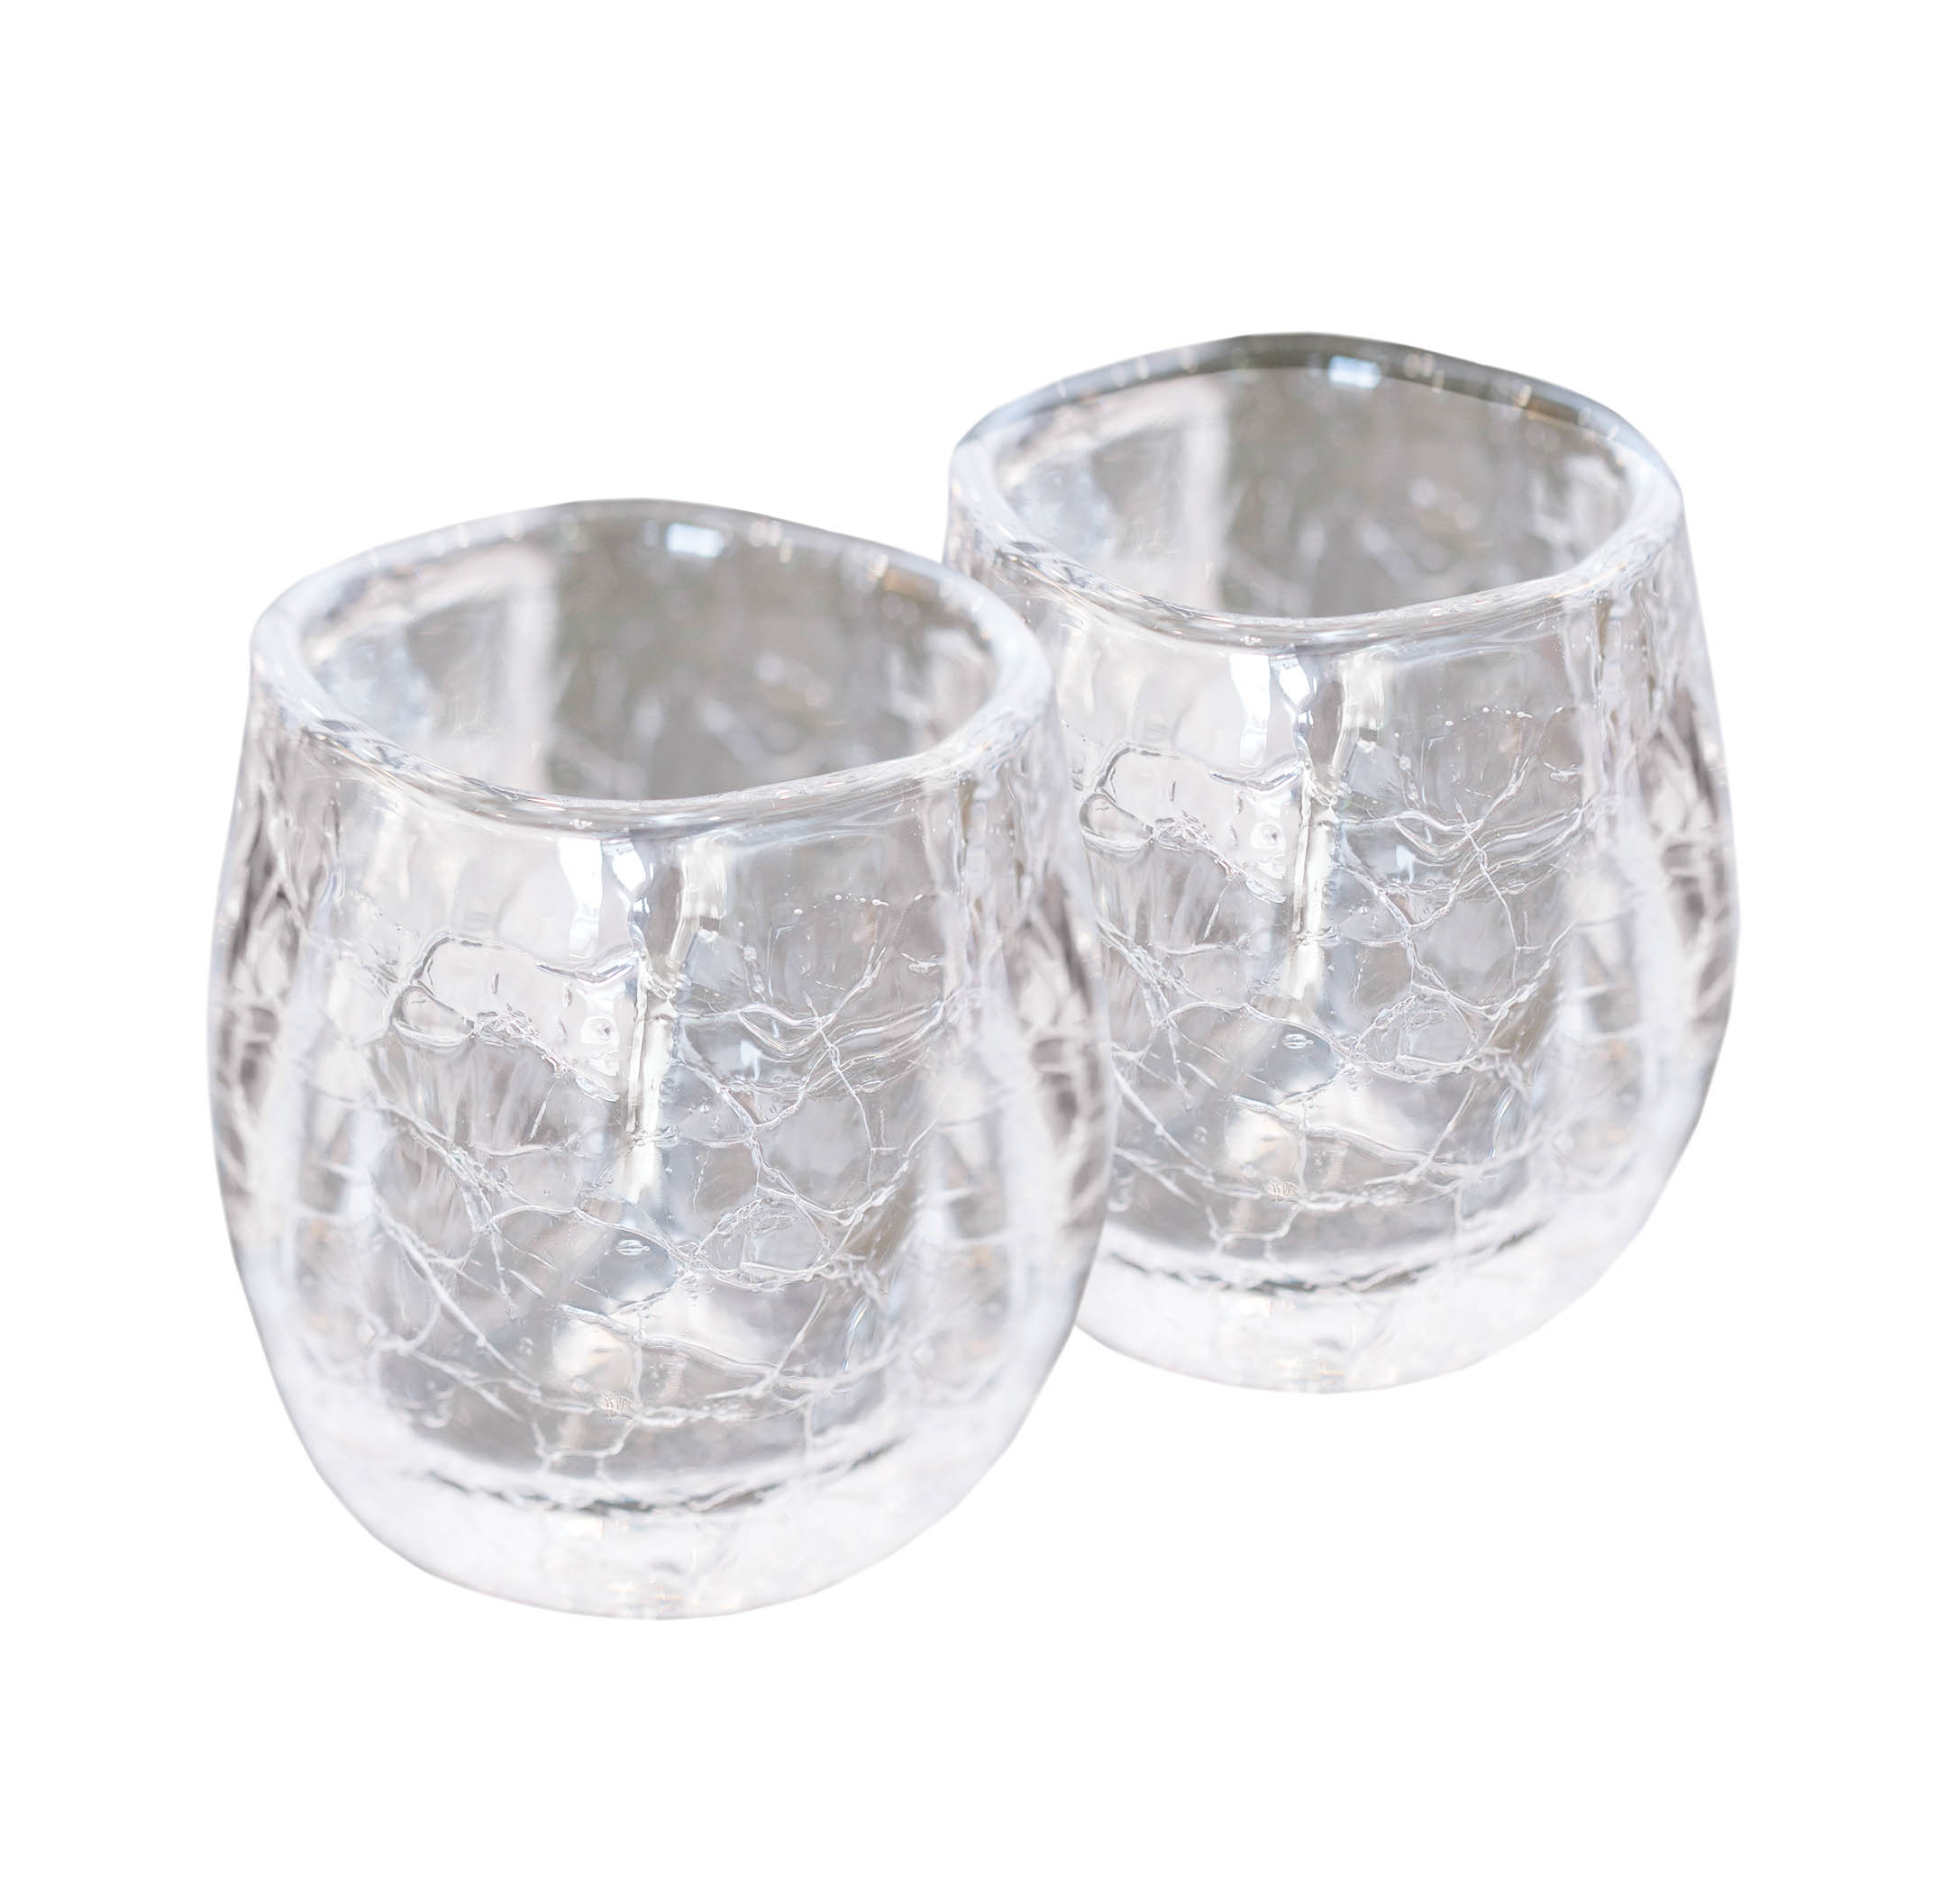 two pieces of glassware